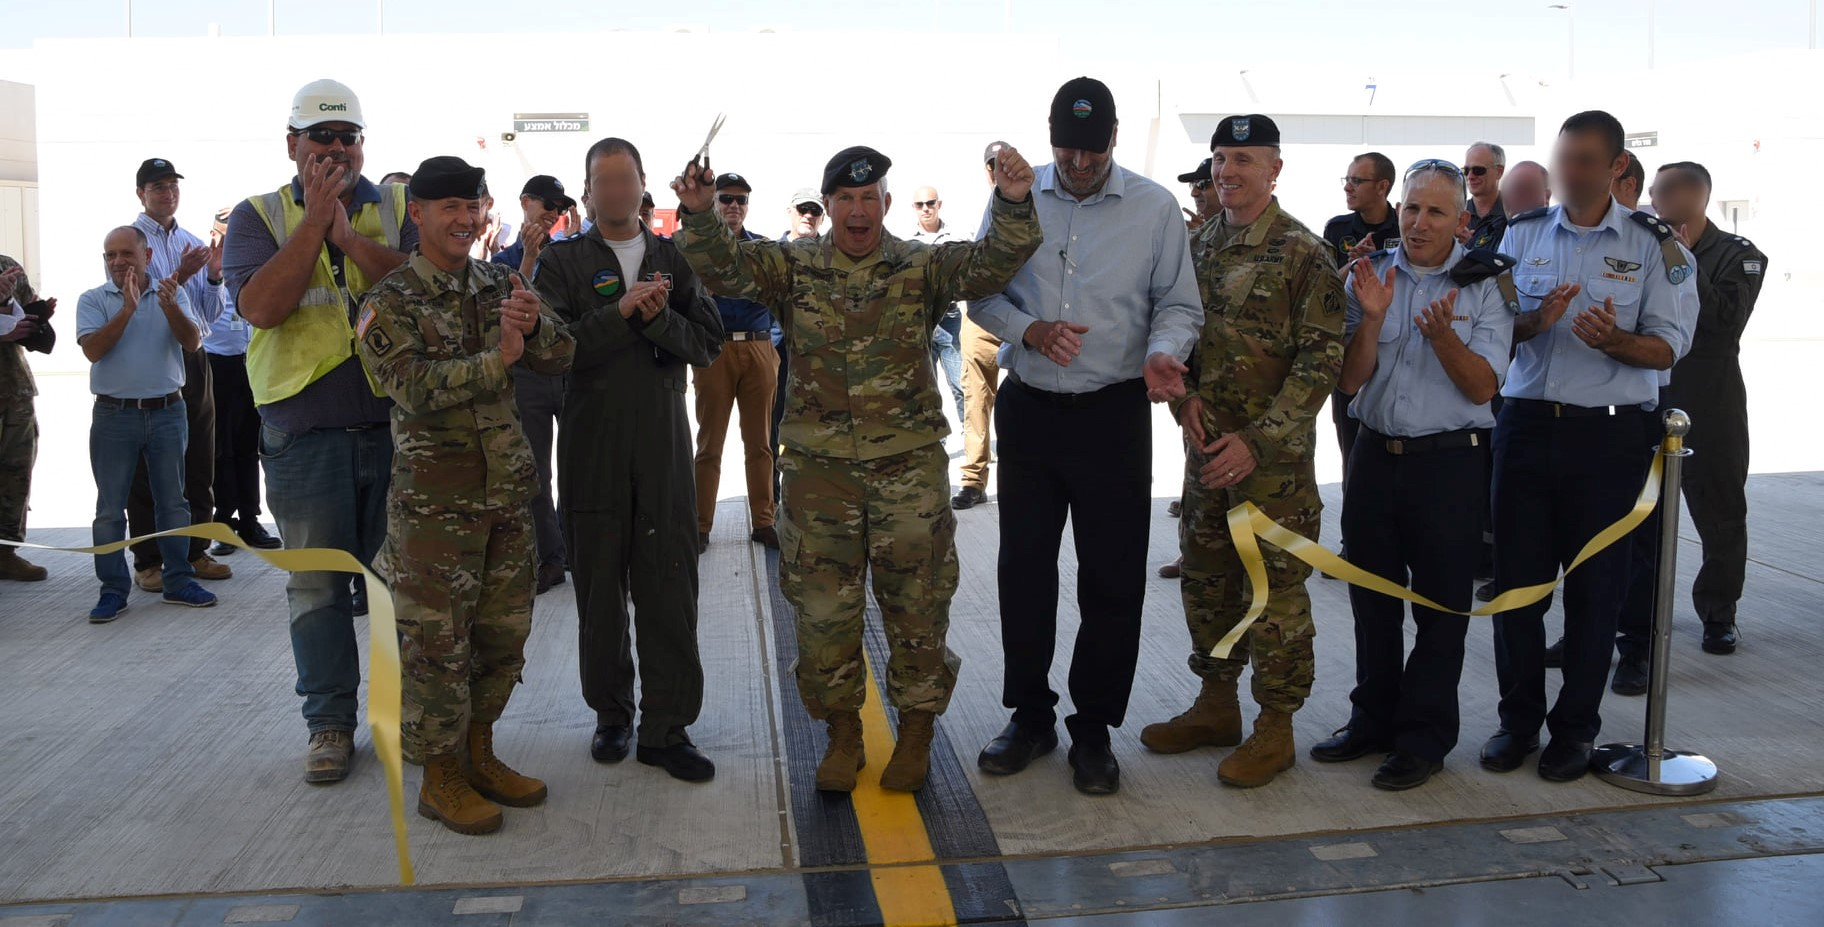 Conti Federal Services Celebrates the Opening of New Hangar Project with USACE and the IAF